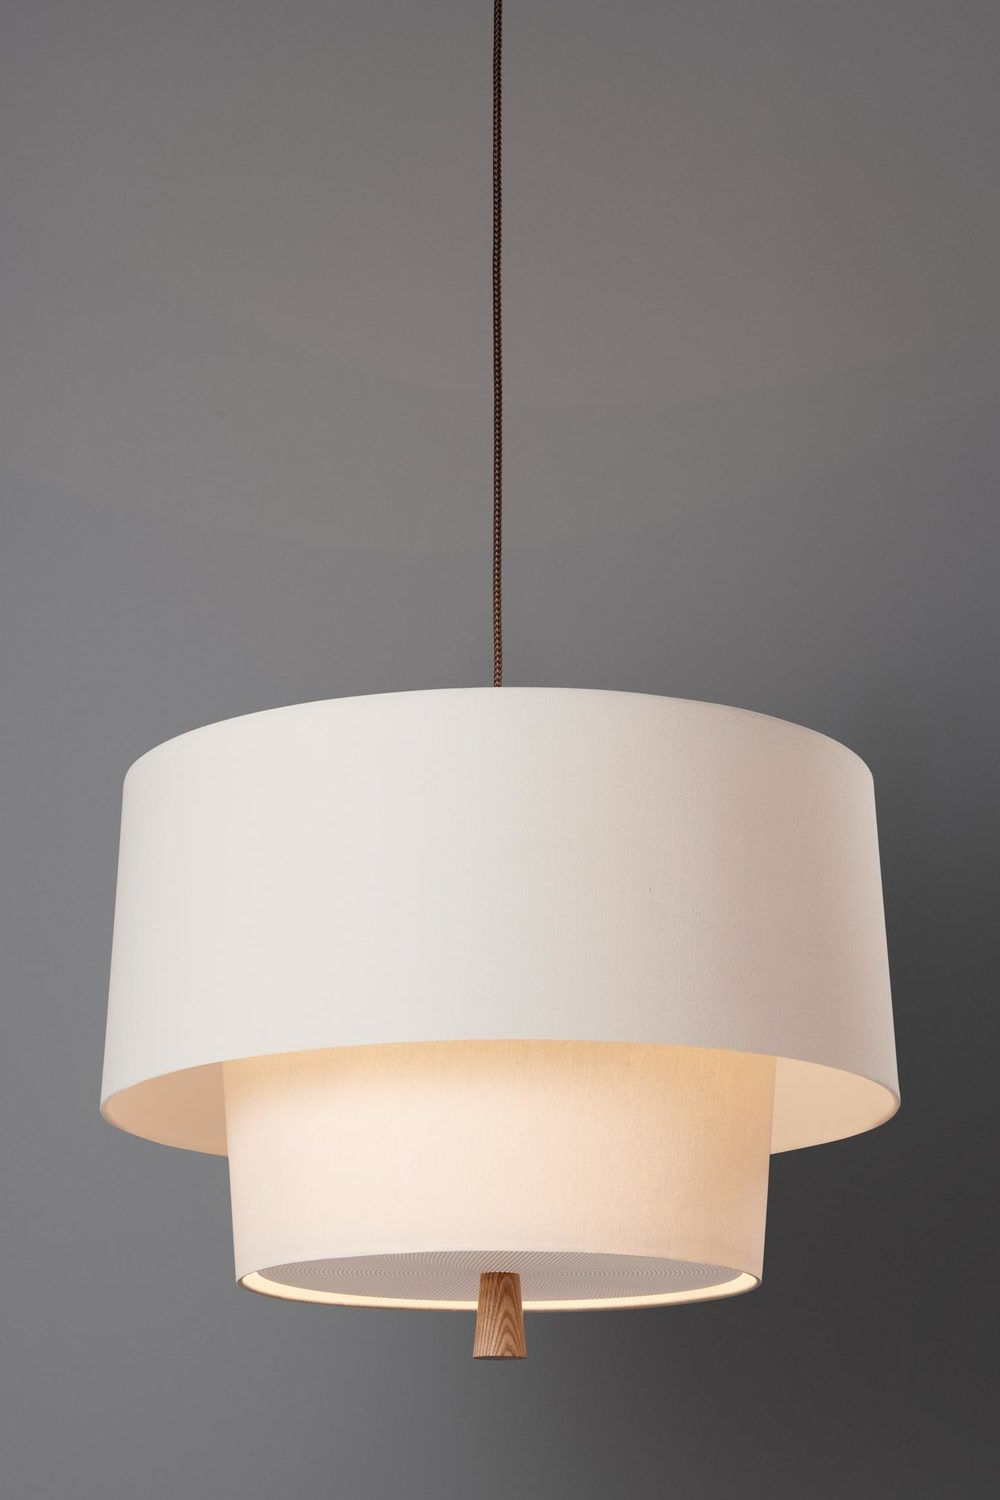 Burslem 3 Light Single Drum Pendants Throughout Recent Nomen In (View 12 of 20)